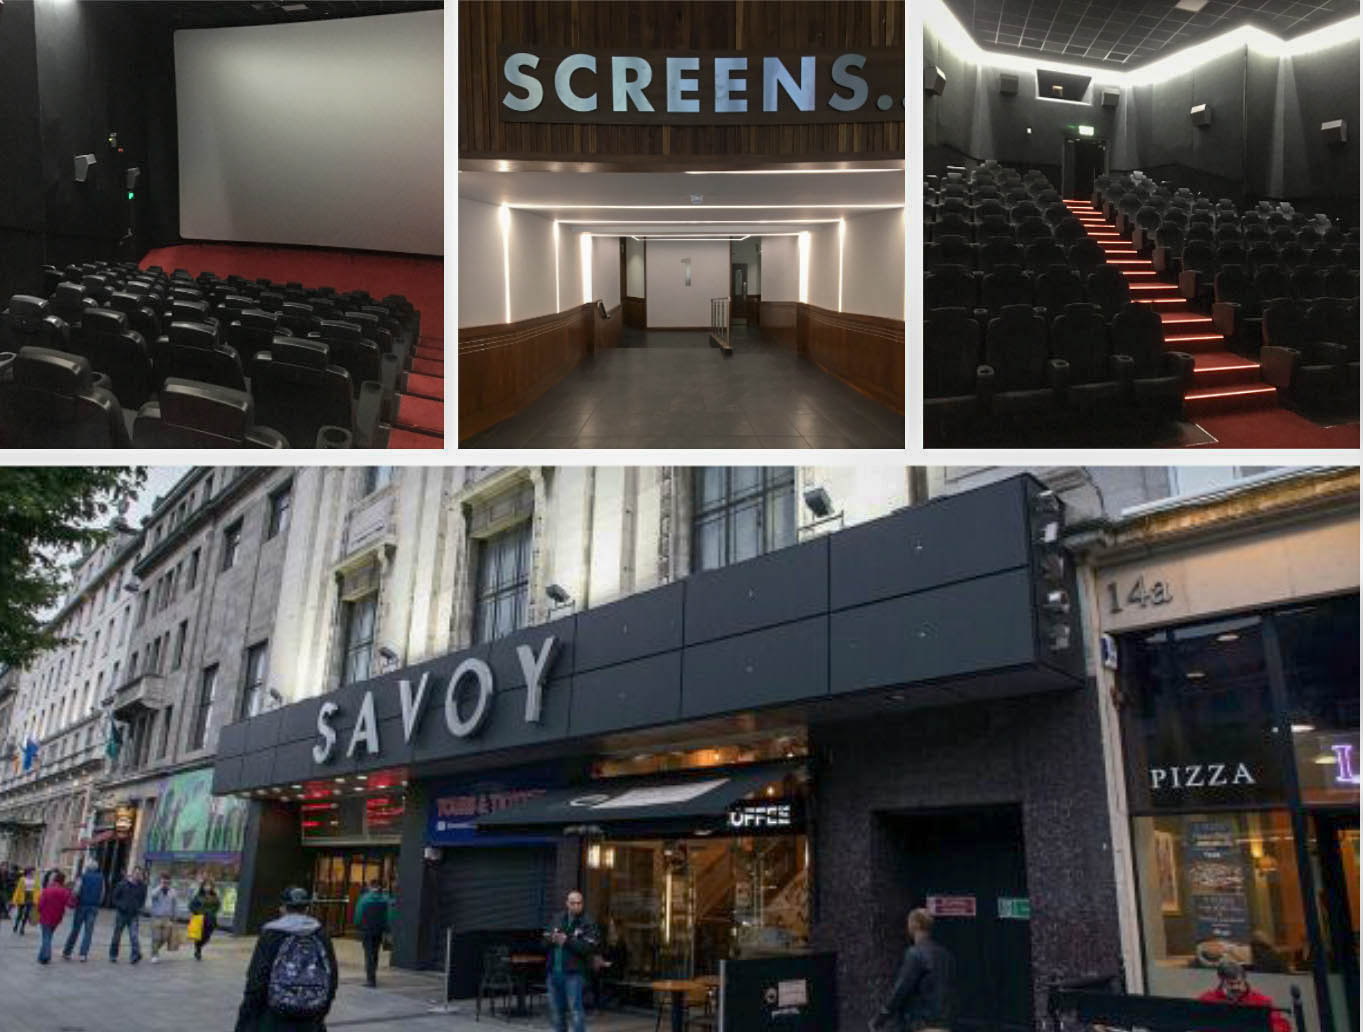 Completed Works on Savoy Cinema